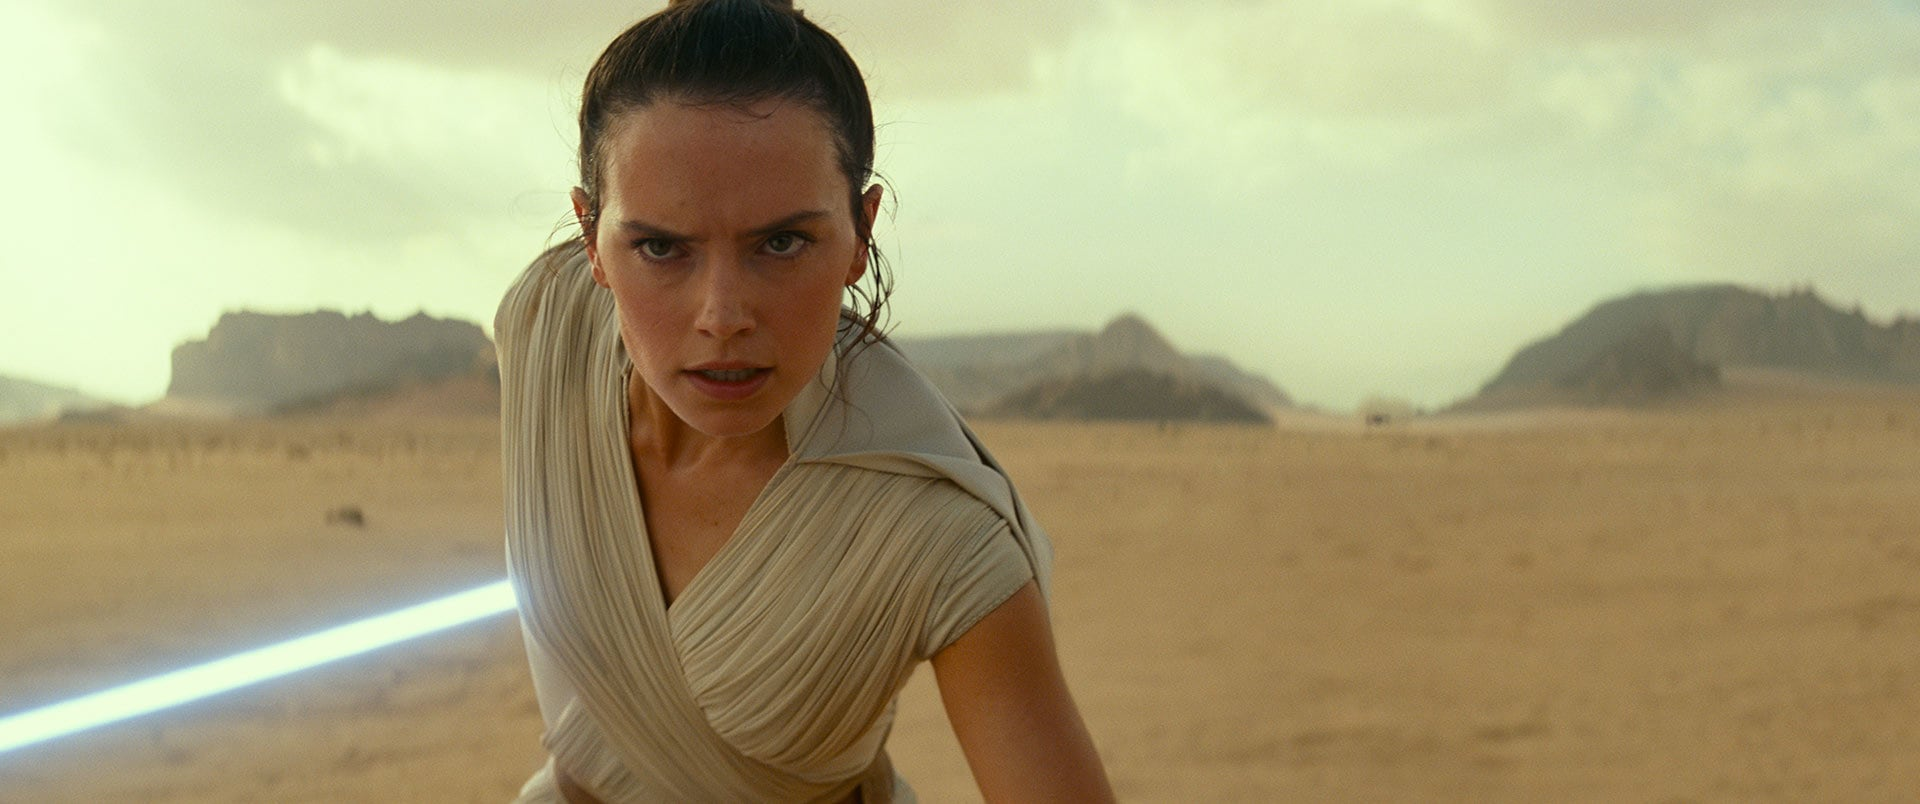 Is The Title 'The Rise of Skywalker' A Spoiler or a Hint At Something Greater?